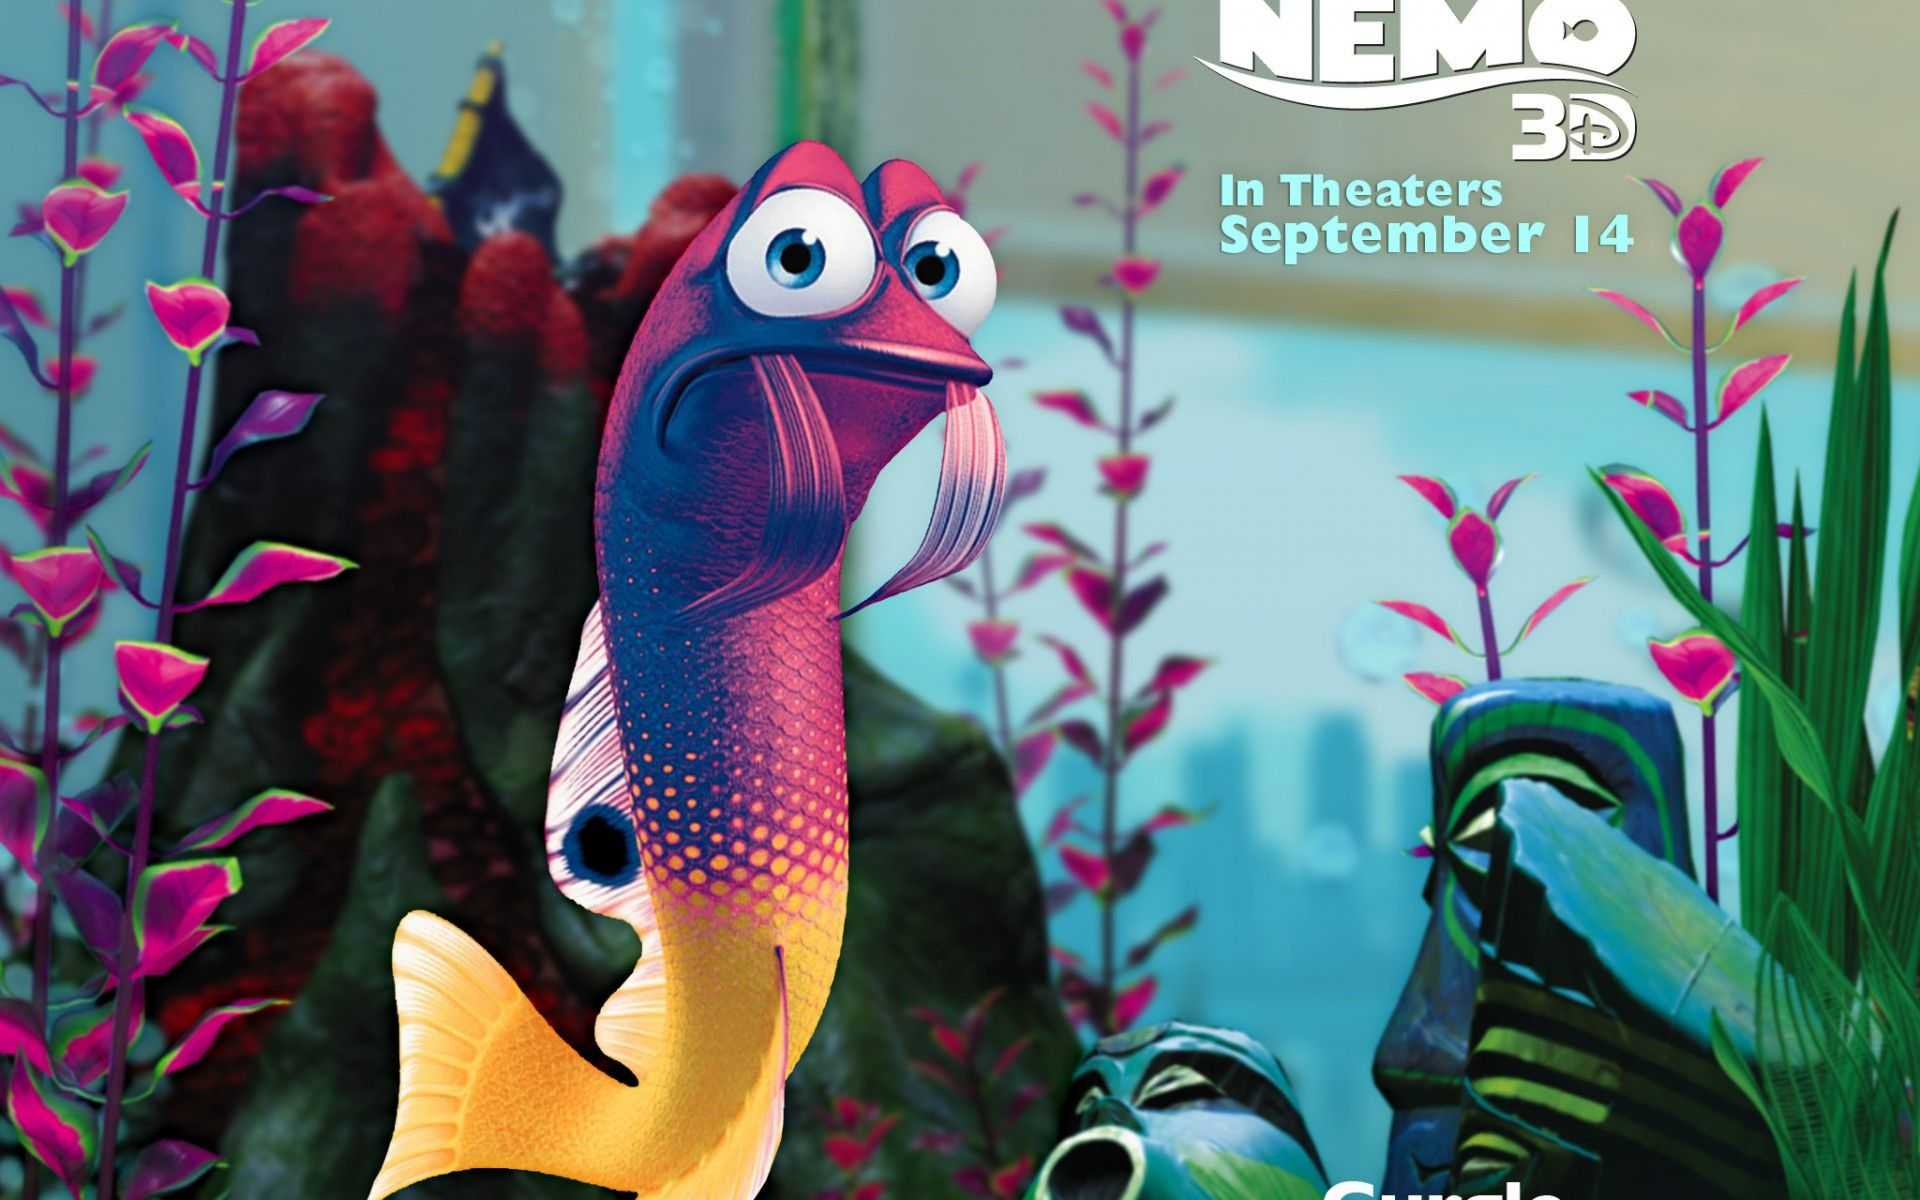 Finding Nemo Worksheet together with Download Finding Nemo Gurgle Wallpaper